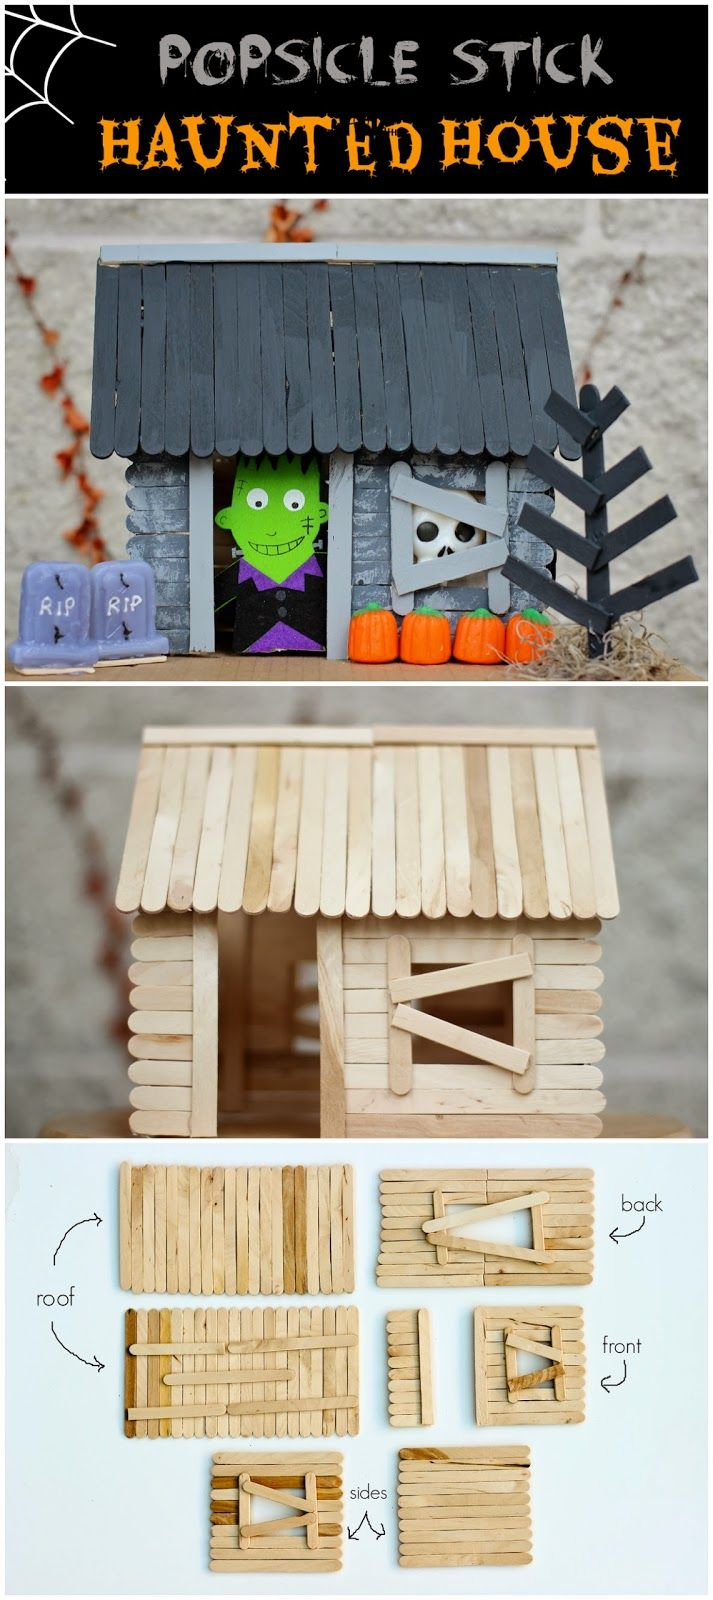 Popsicle Stick Haunted House via Happily Everly After @Popsicle #partner